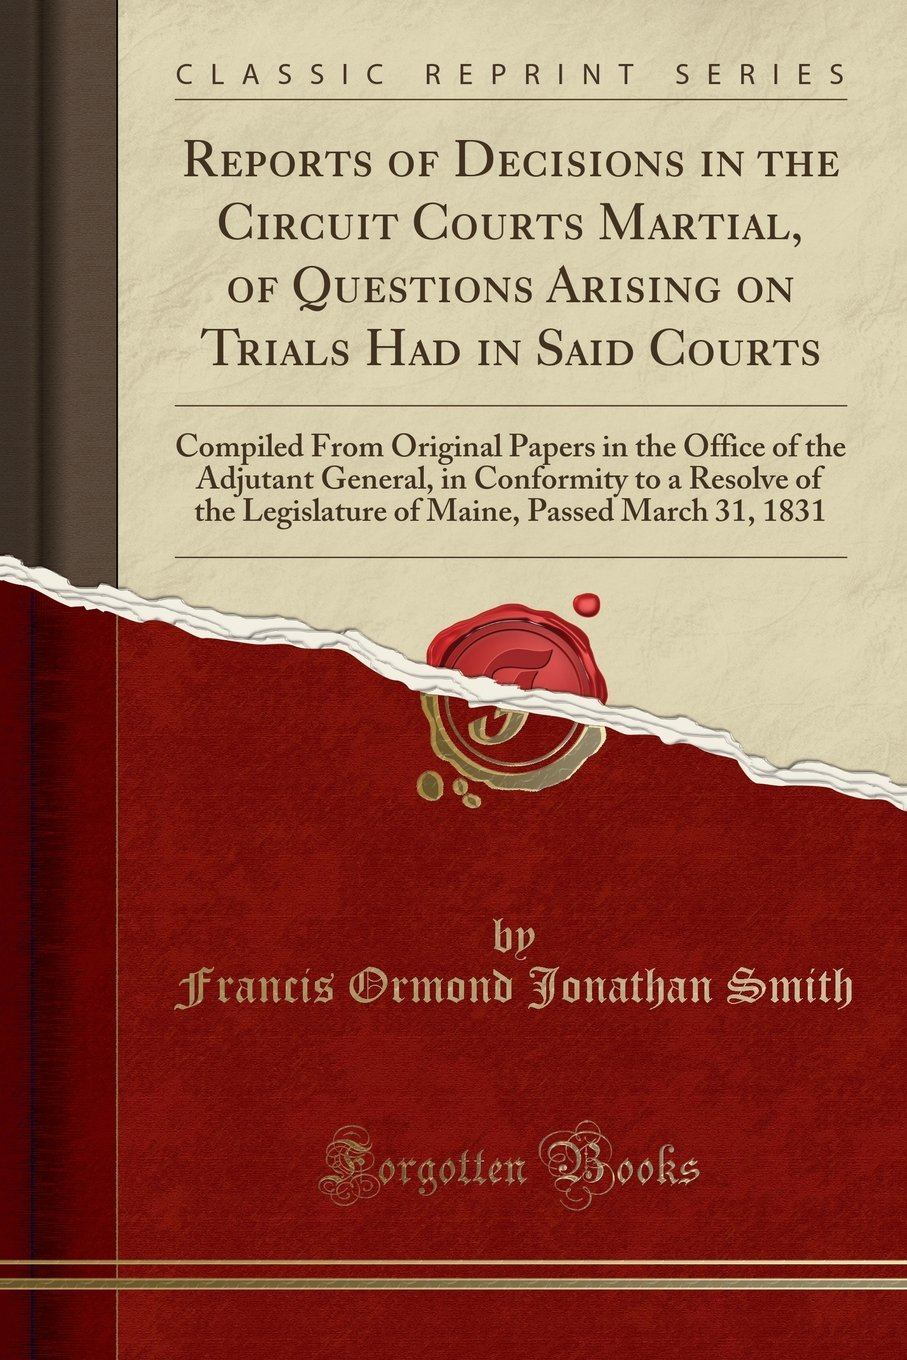 Download Reports of Decisions in the Circuit Courts Martial, of Questions Arising on Trials Had in Said Courts: Compiled From Original Papers in the Office of ... Legislature of Maine, Passed March 31, 1831 PDF